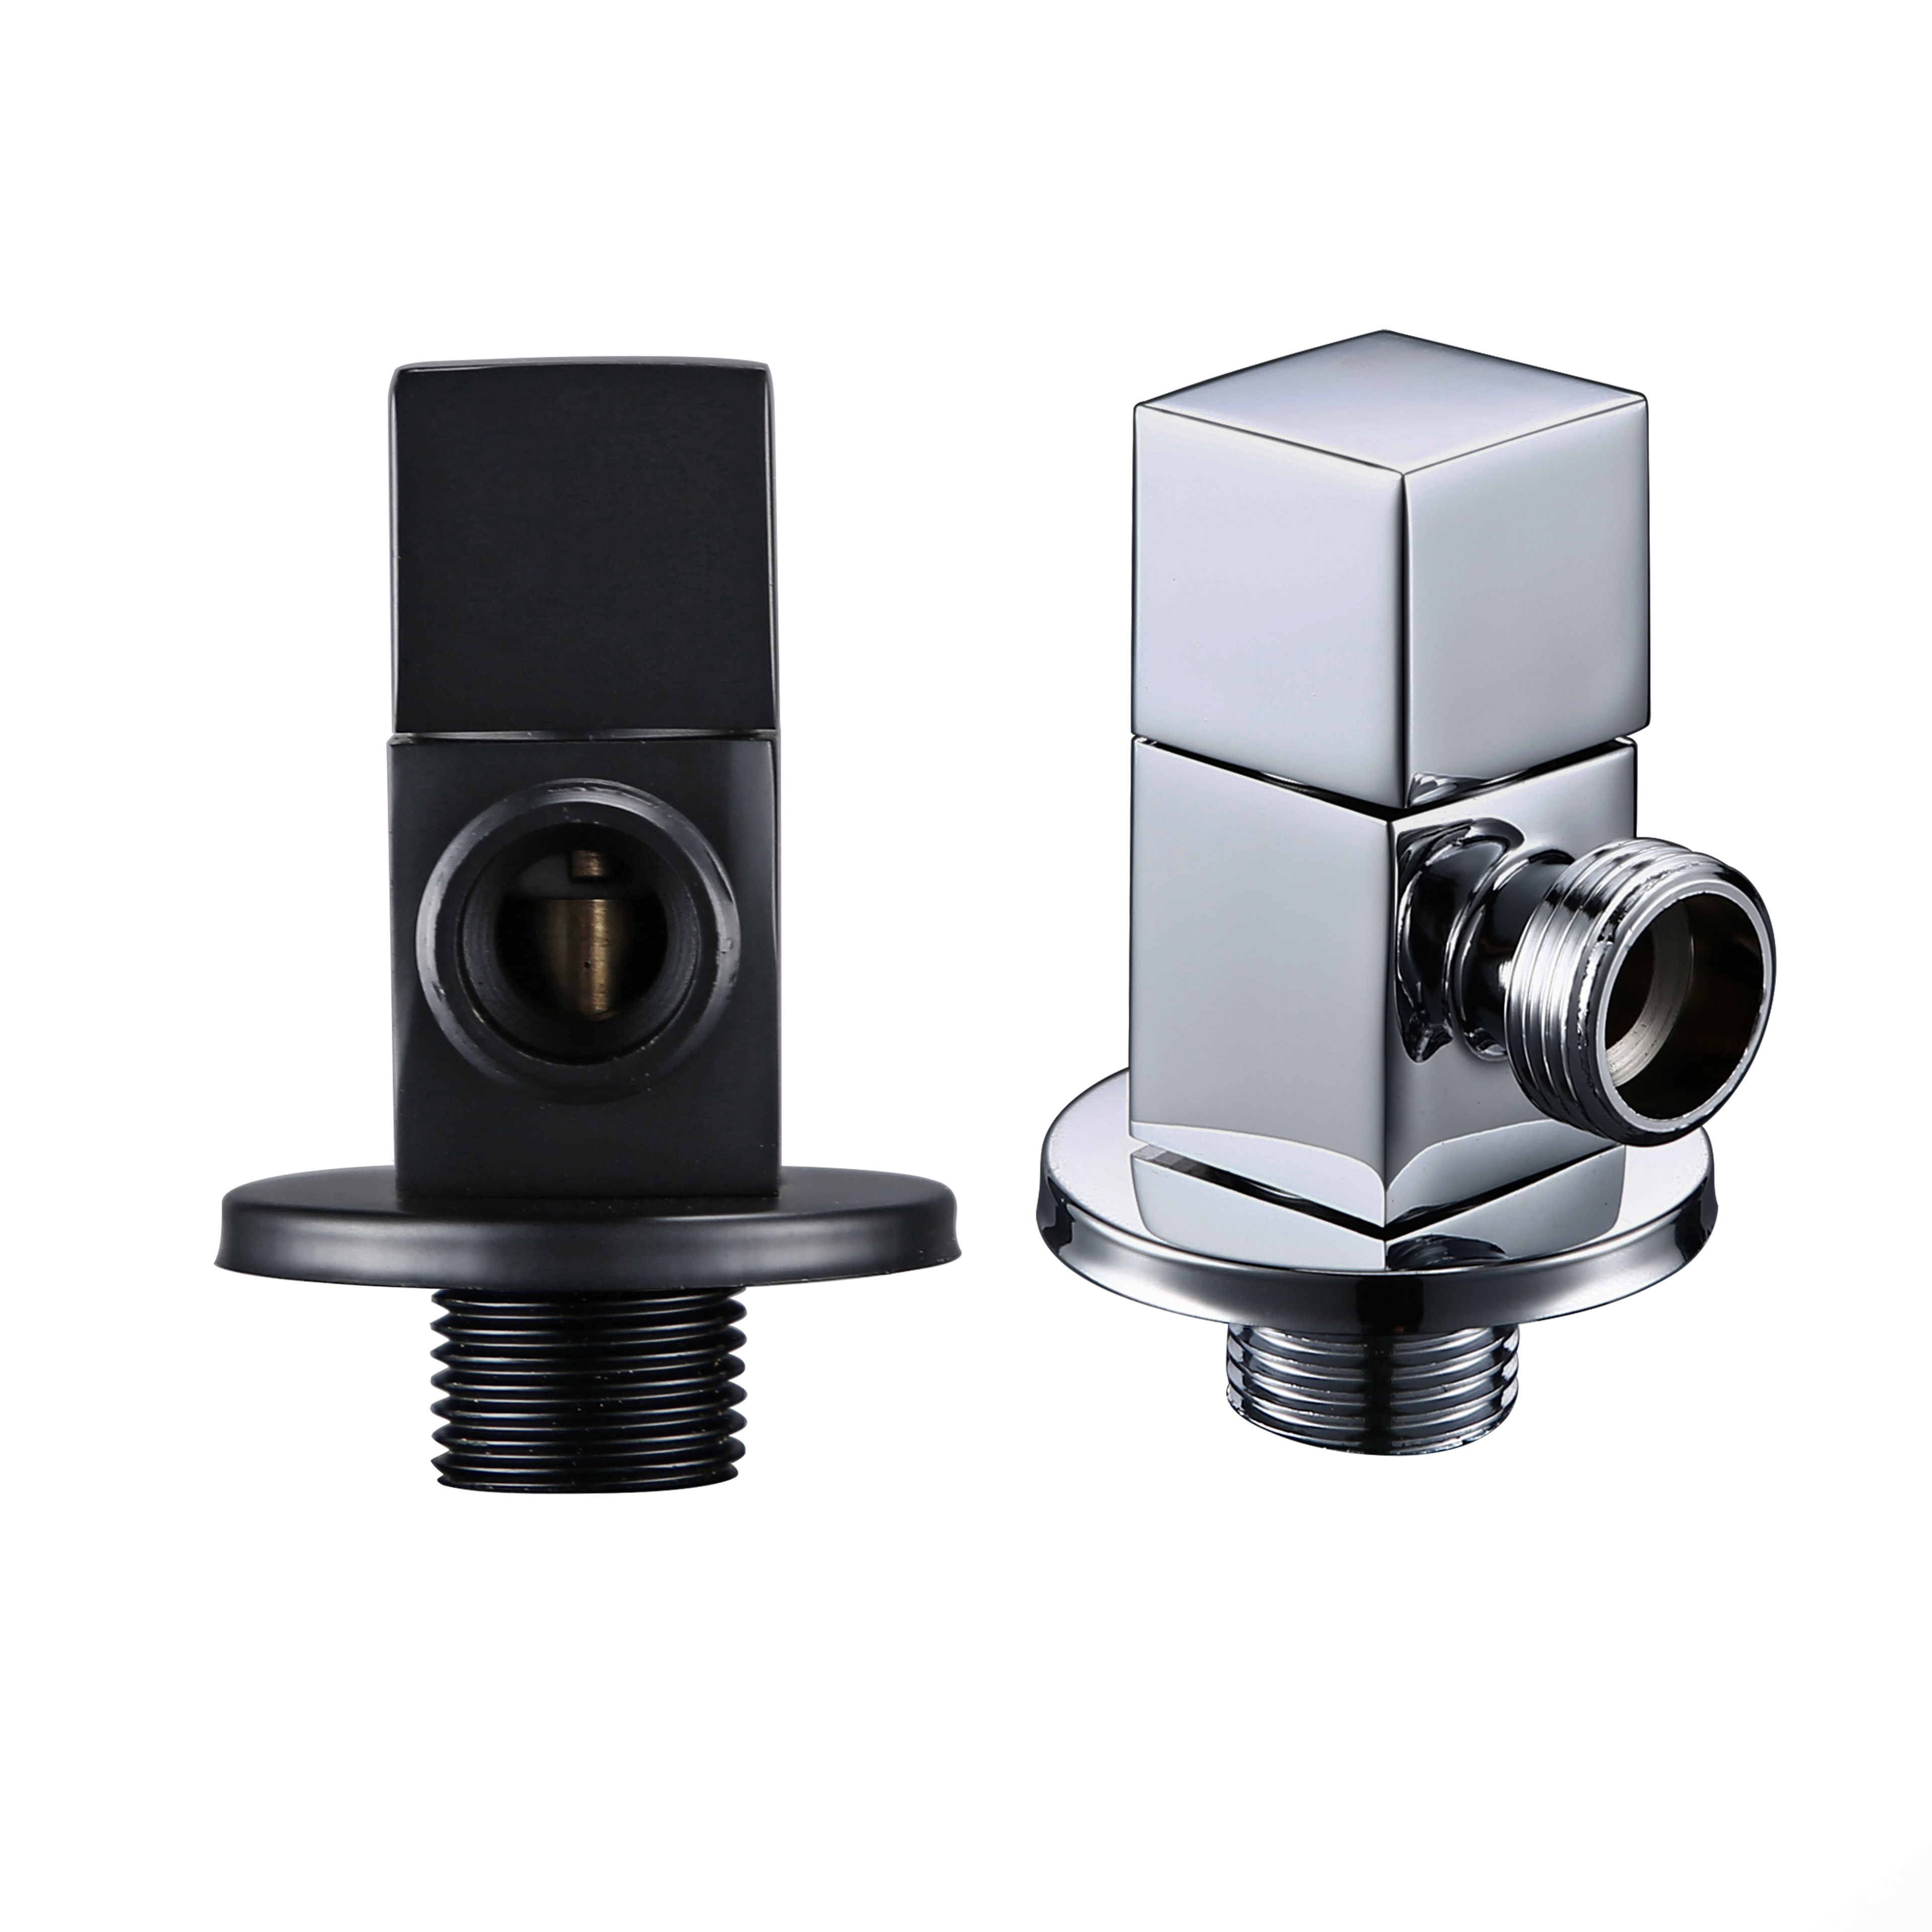 Brass Titanium g1/2 toilet flush Solid Brass Quarter Turn Polished Chrome angle valve black Bathroom accessories image